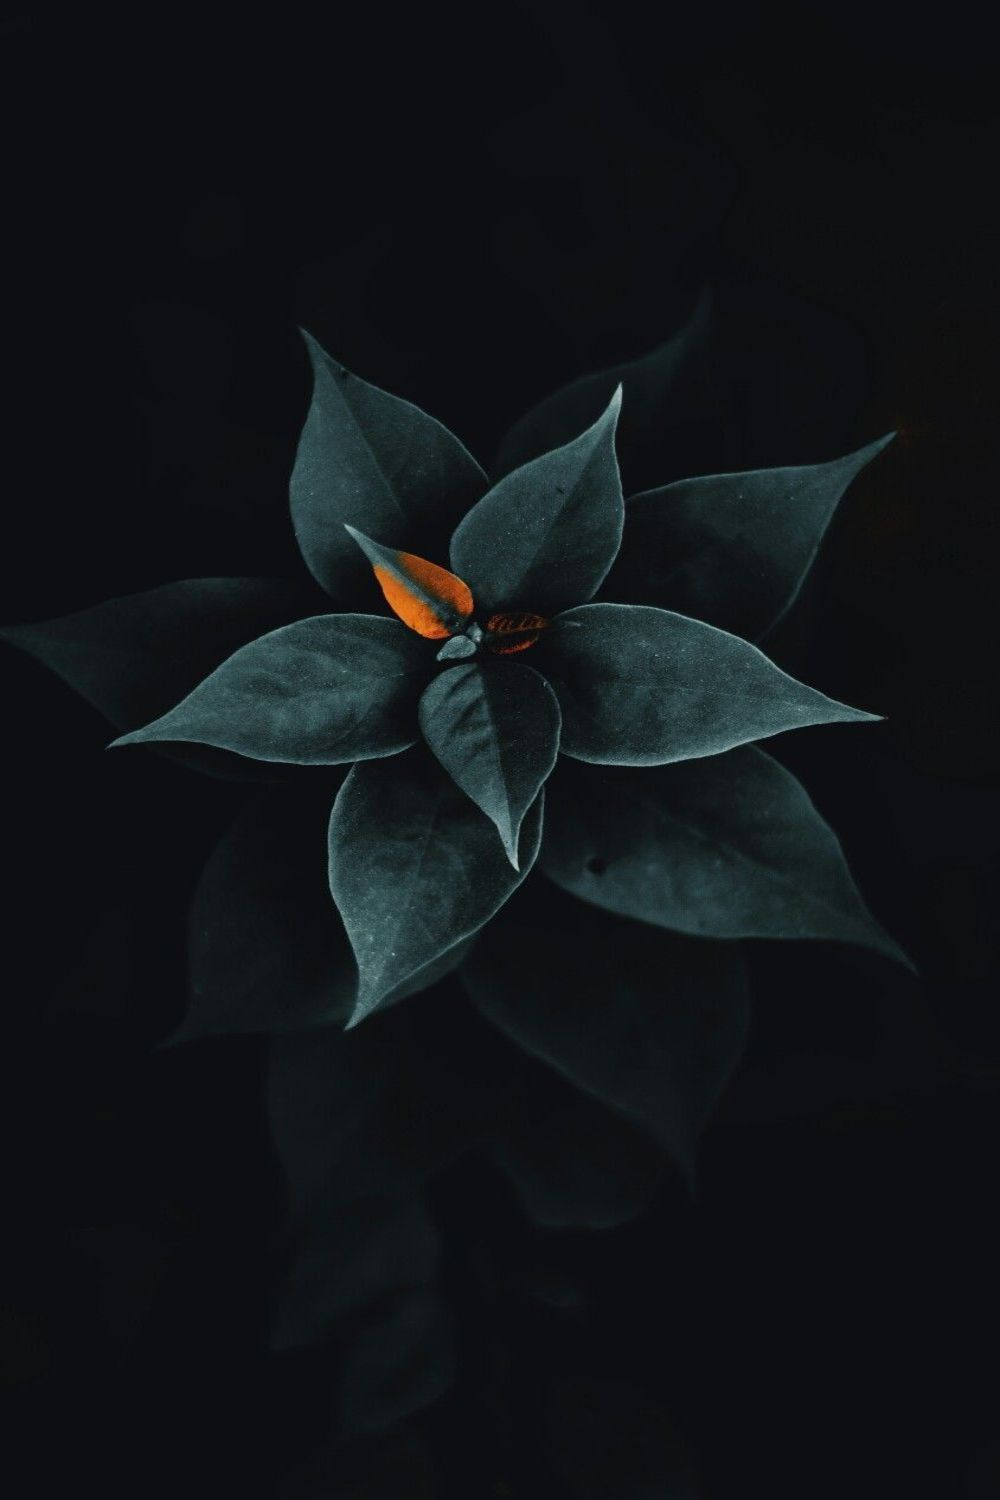 Best Black Wallpaper Hd 4k Free Downloads In 2020 Leaves Wallpaper Iphone Flowers Black Background Black Background Photography